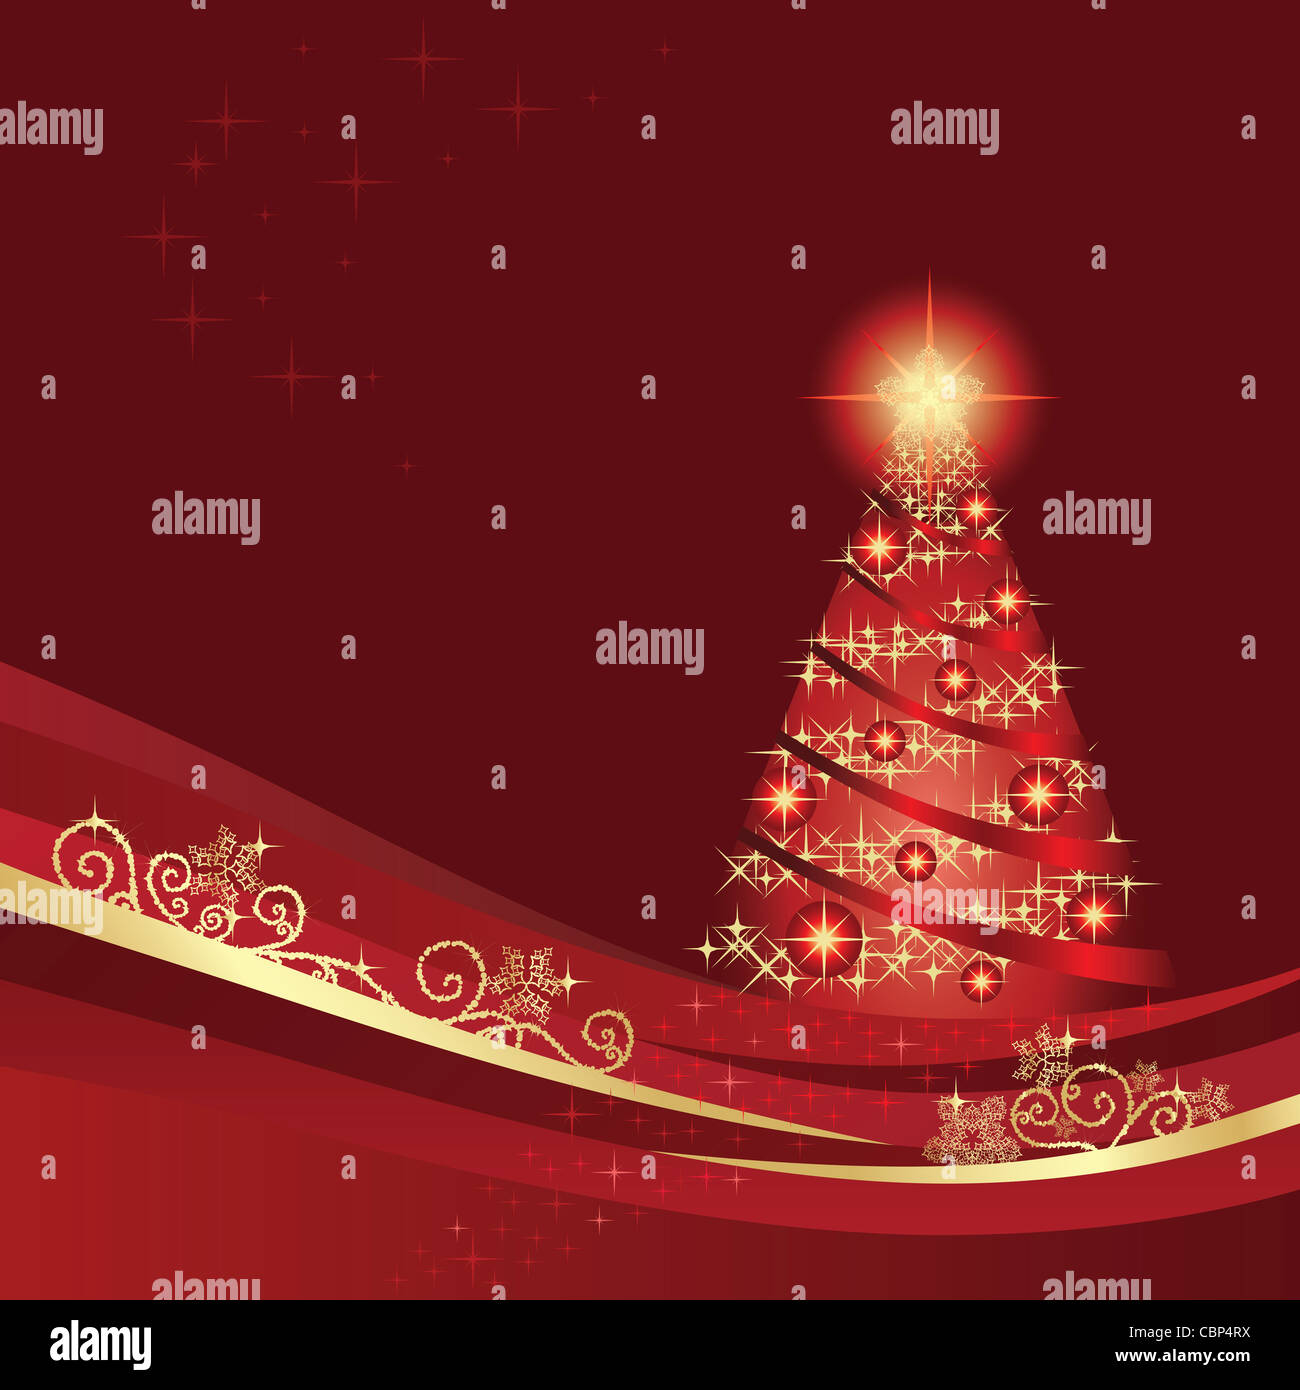 Glowing Christmas tree in a red winter garden Stock Photo